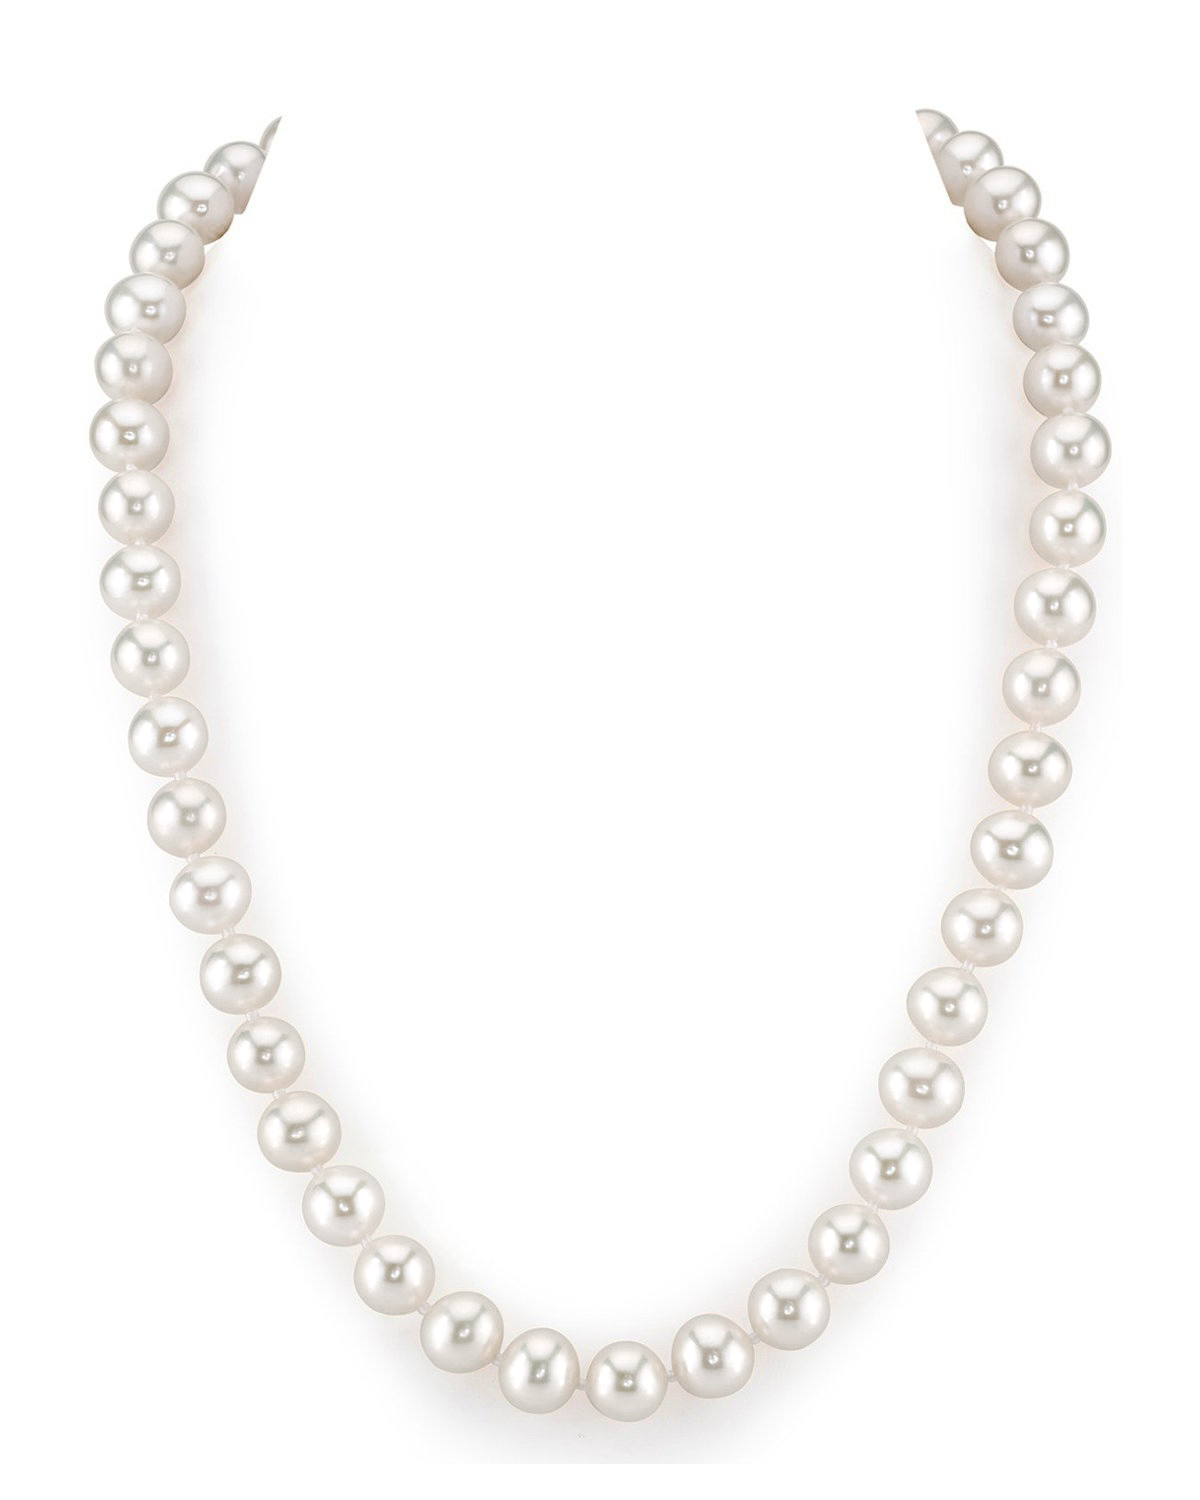 Freshwater Round Shape White Color 10 mm Pearl String